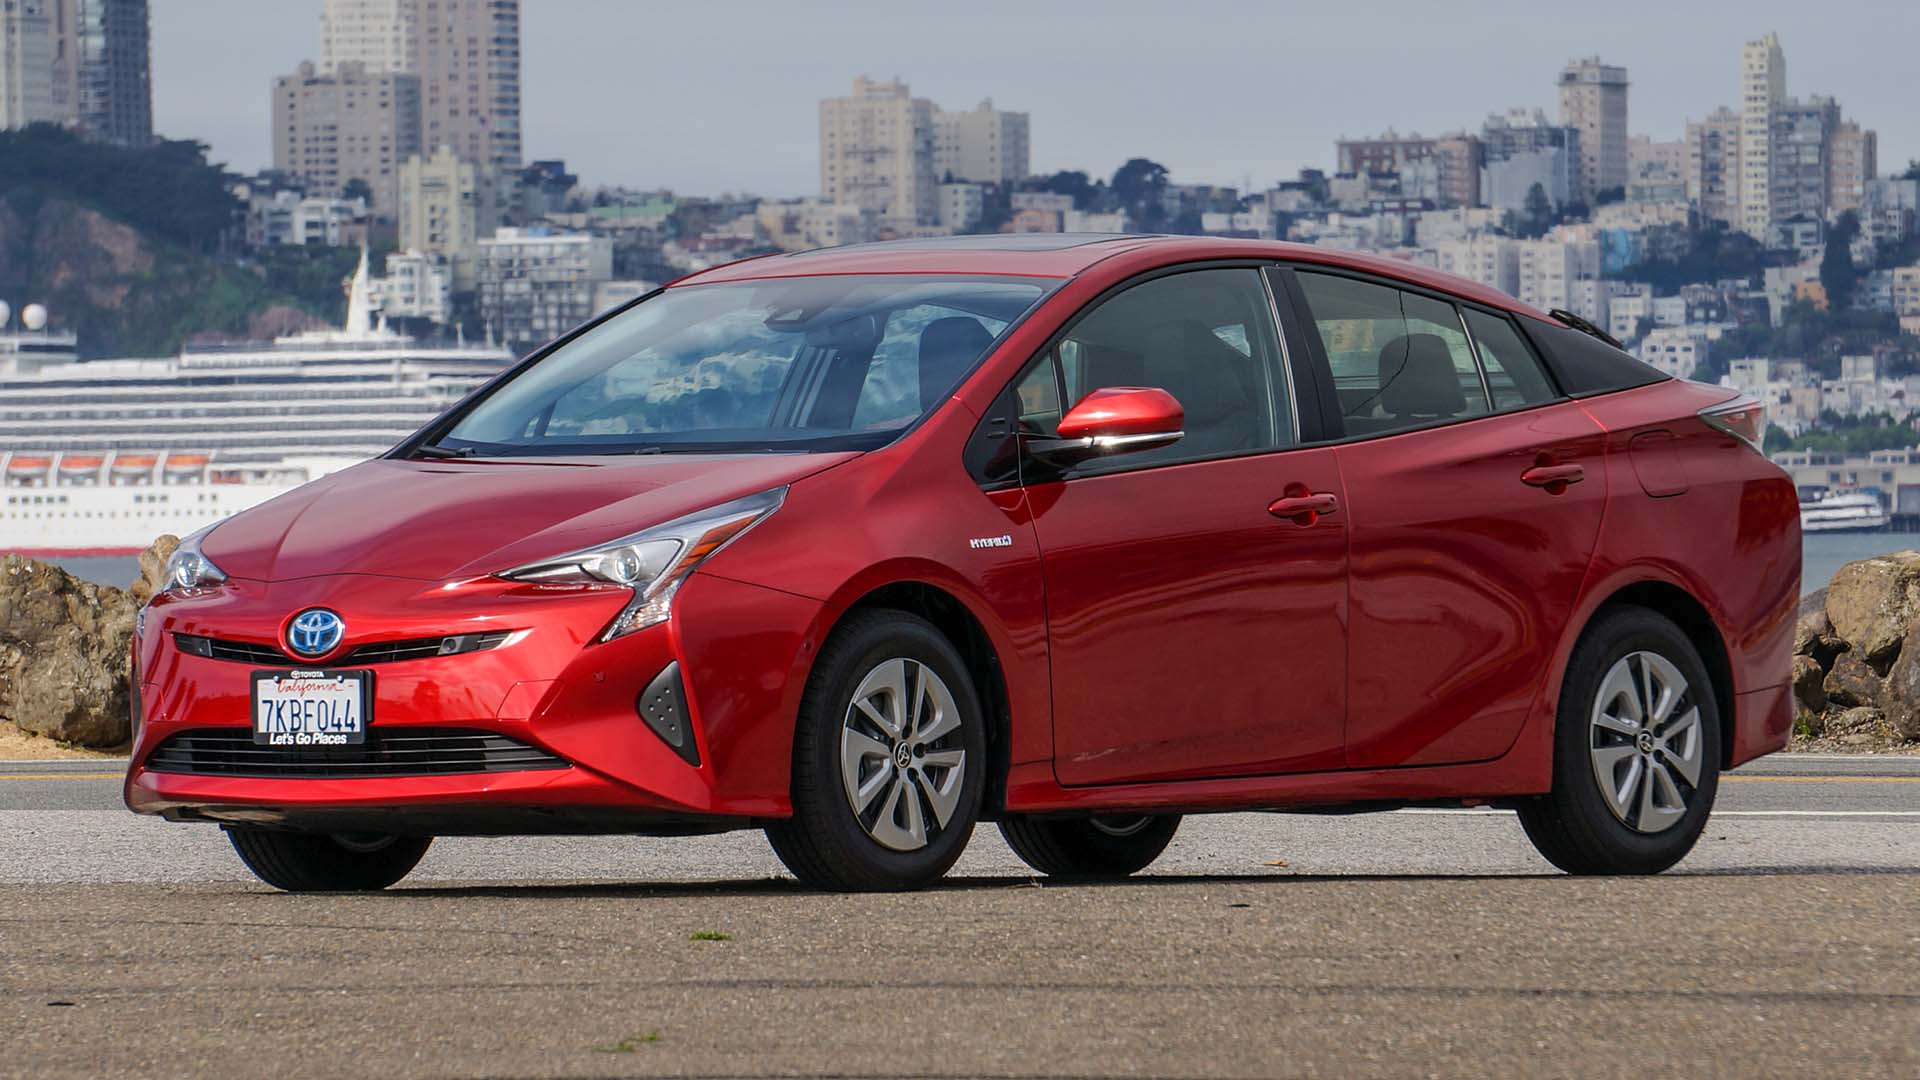 Video: Honing the hybrid: Toyota sharpens the Prius' eco car chops